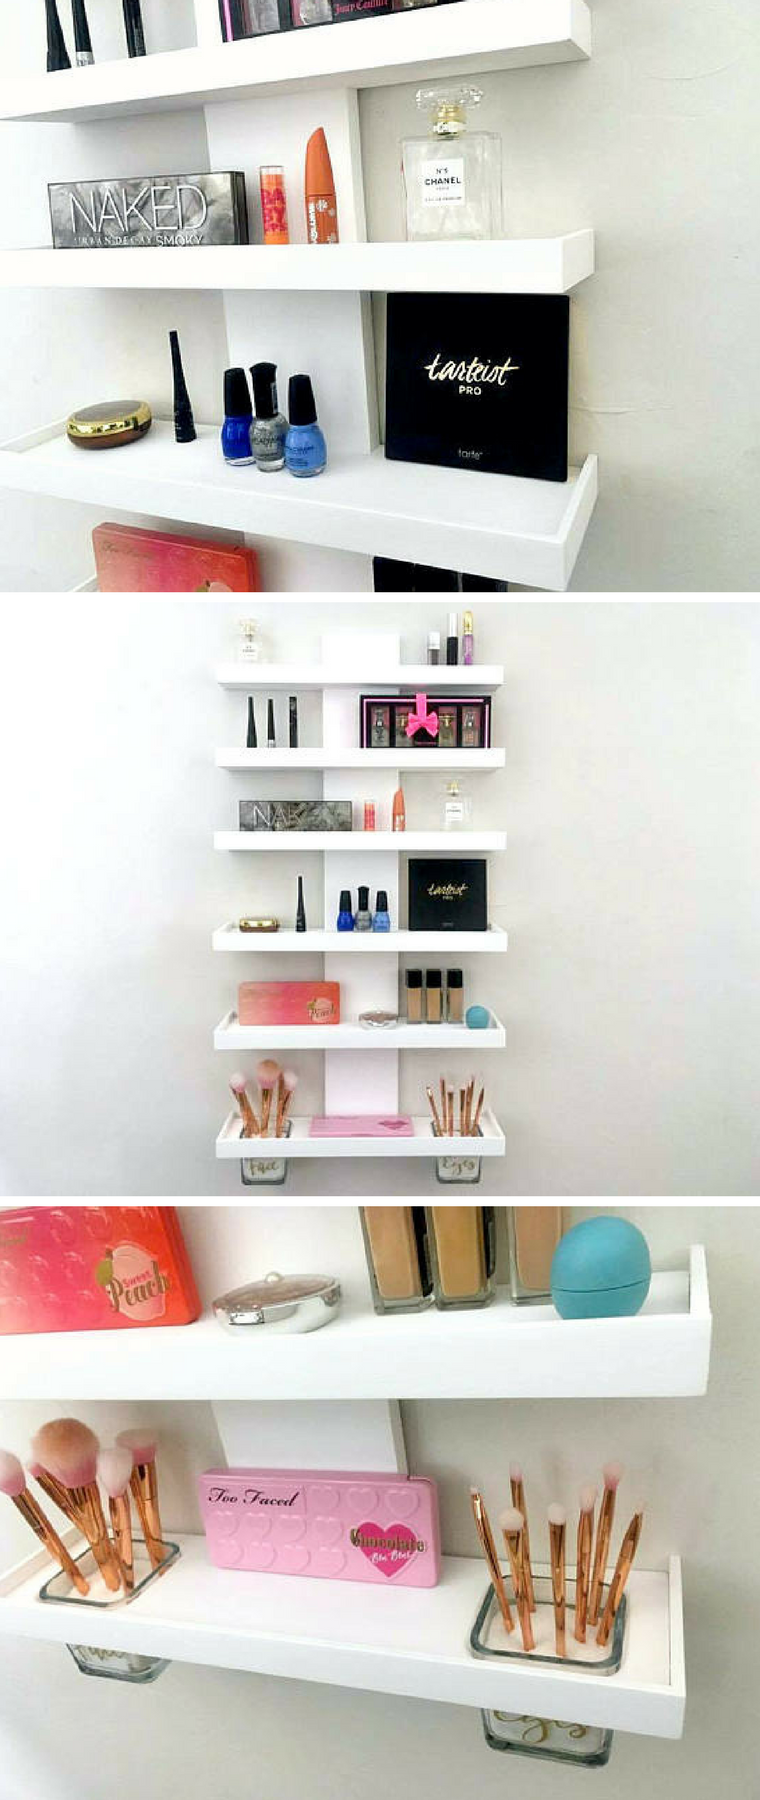 Organize Your Makeup And Beauty Essentials With This Sleek Stylish Wall Mounted Shelf Helps Stay Org Wall Storage Diy Wall Mounted Shelves Makeup Storage Wall